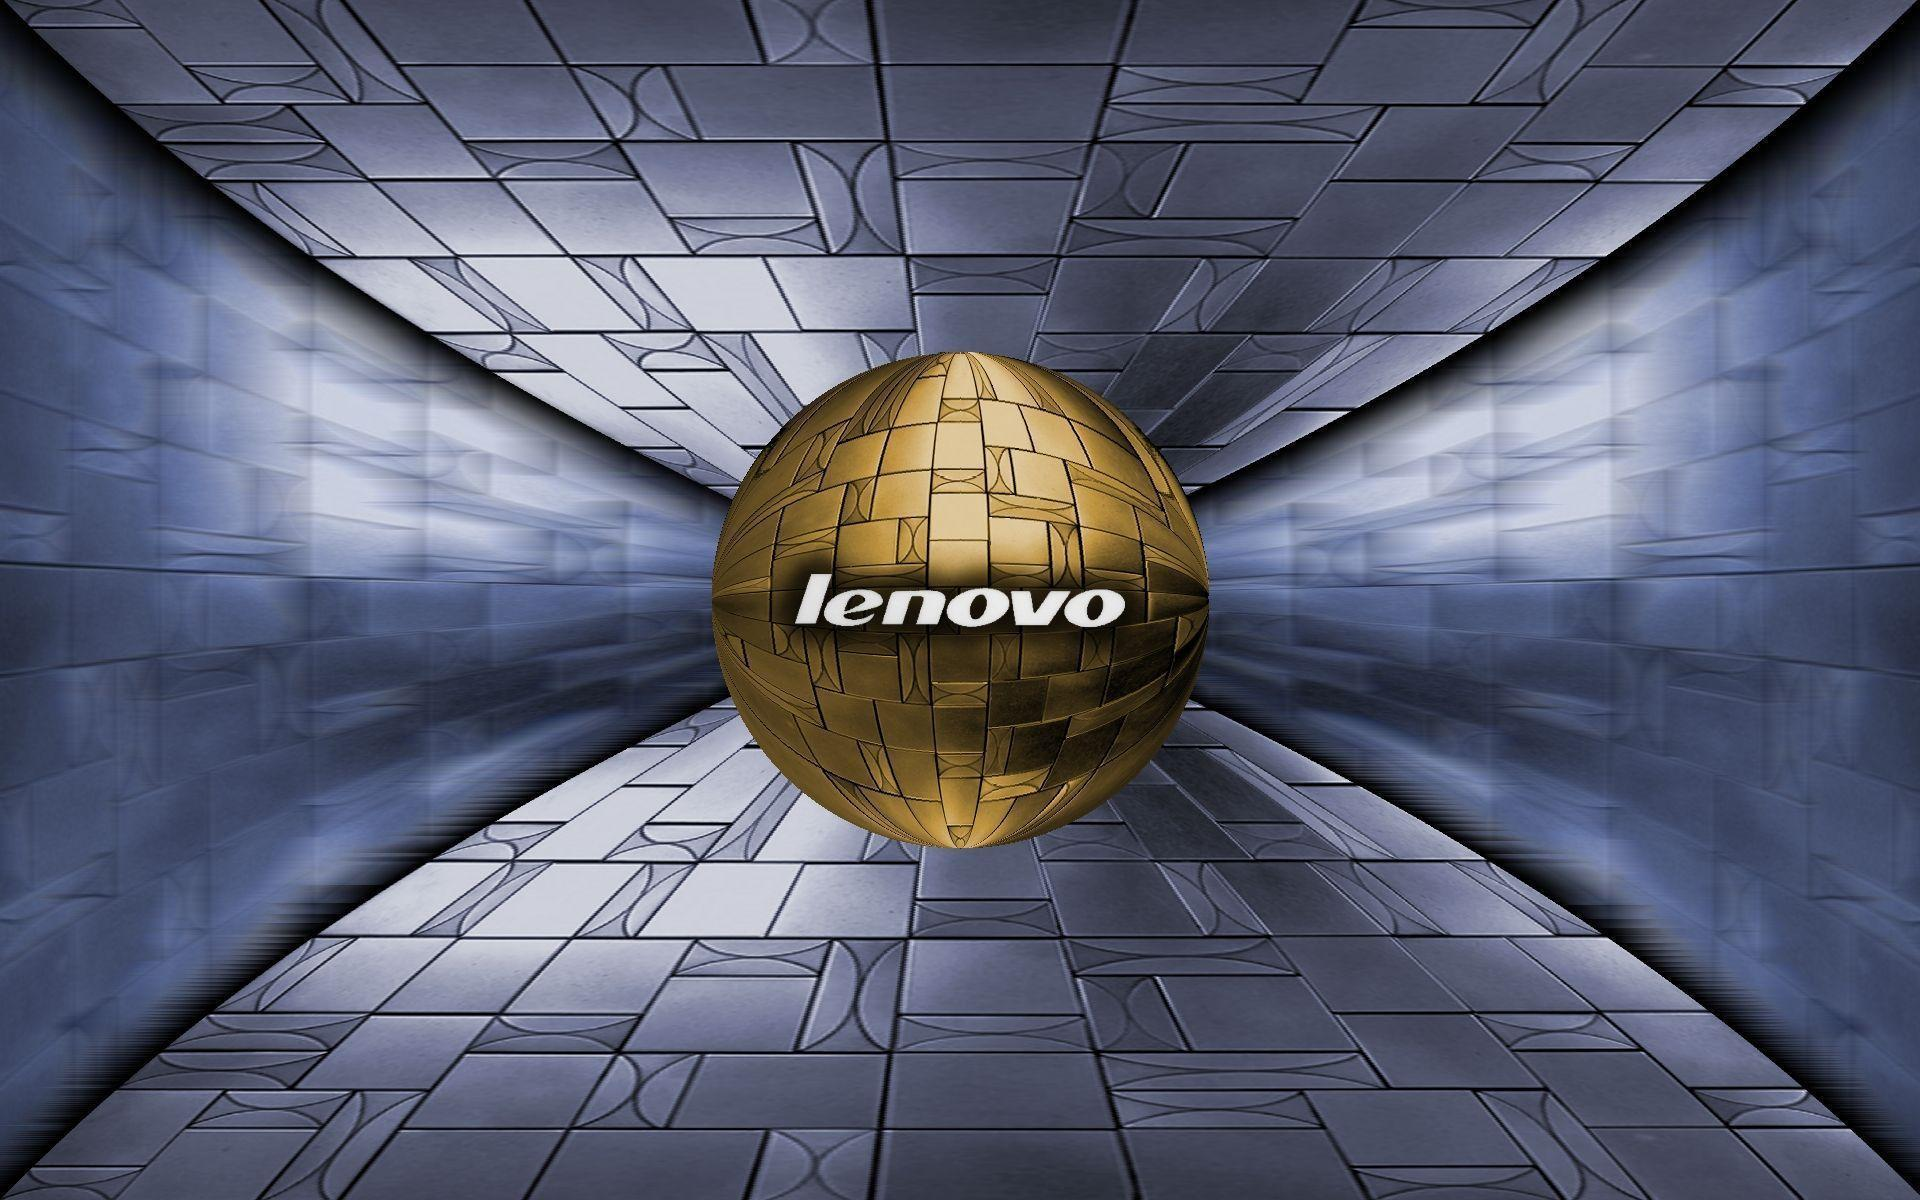 Lenovo Wallpaper Theme